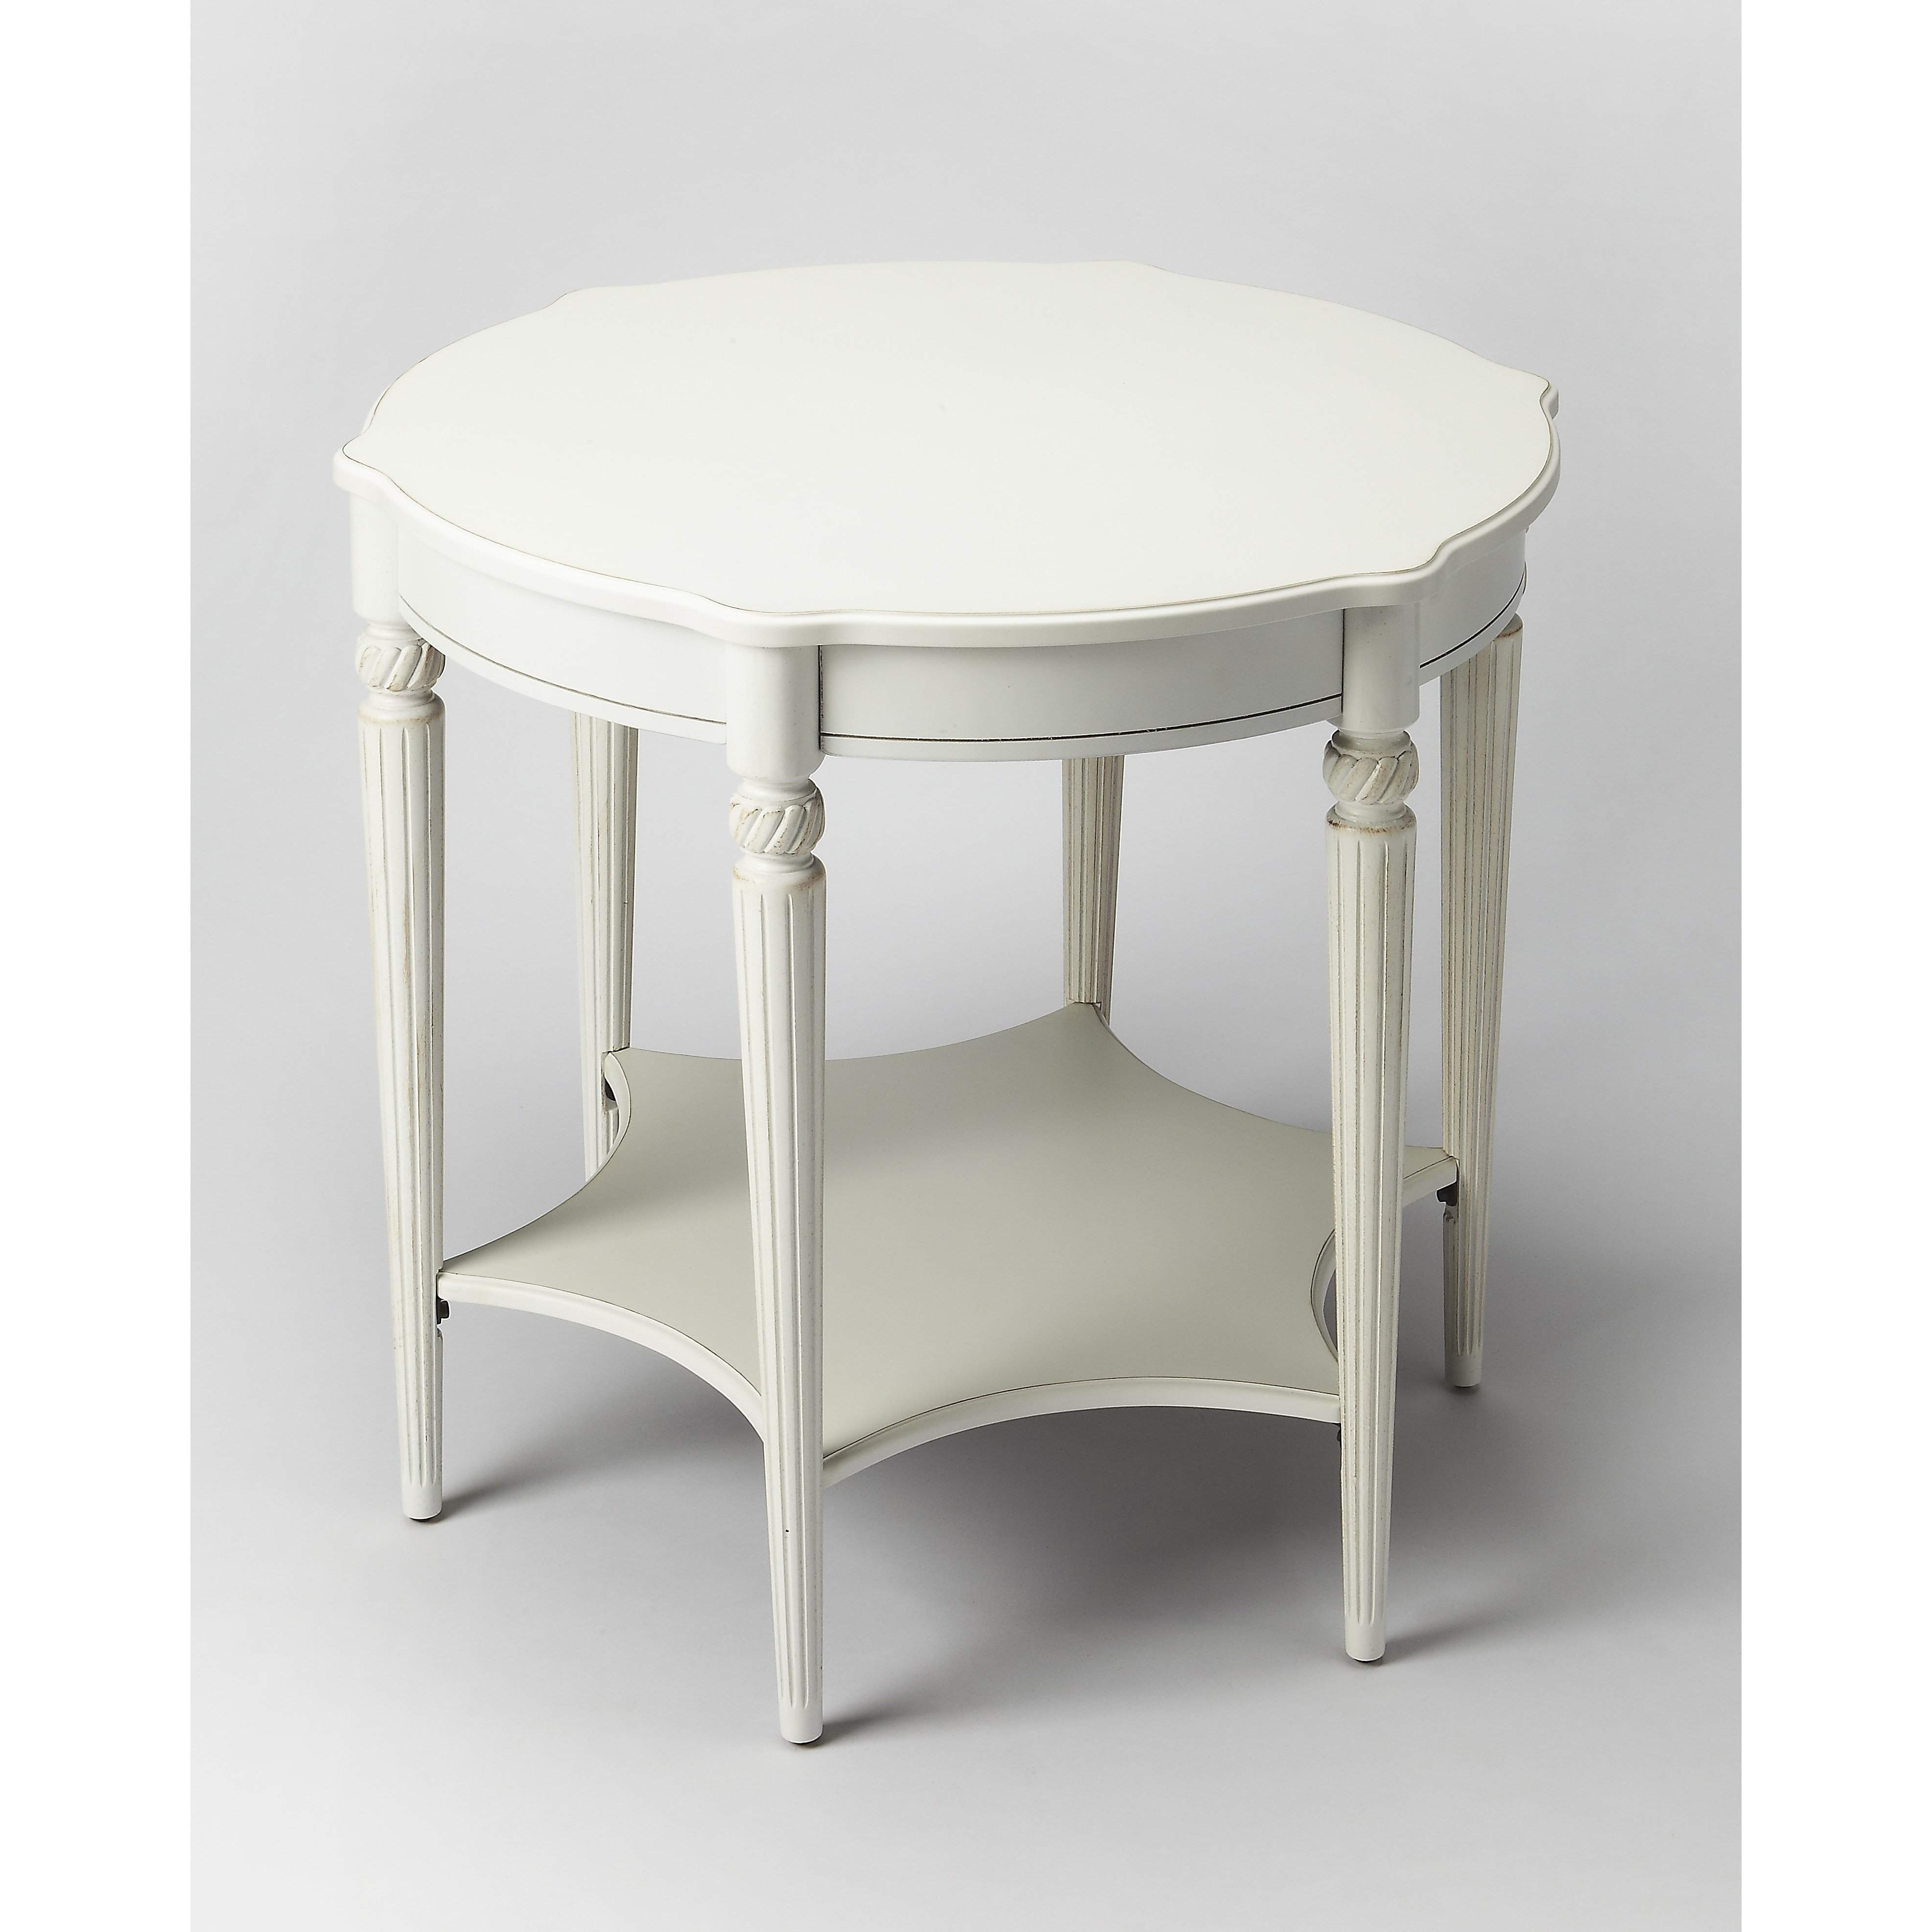 butler bainbridge cottage white accent table round this elegant blends classic old world styling with today casual sophistication nautical bedside lamps kids outdoor furniture